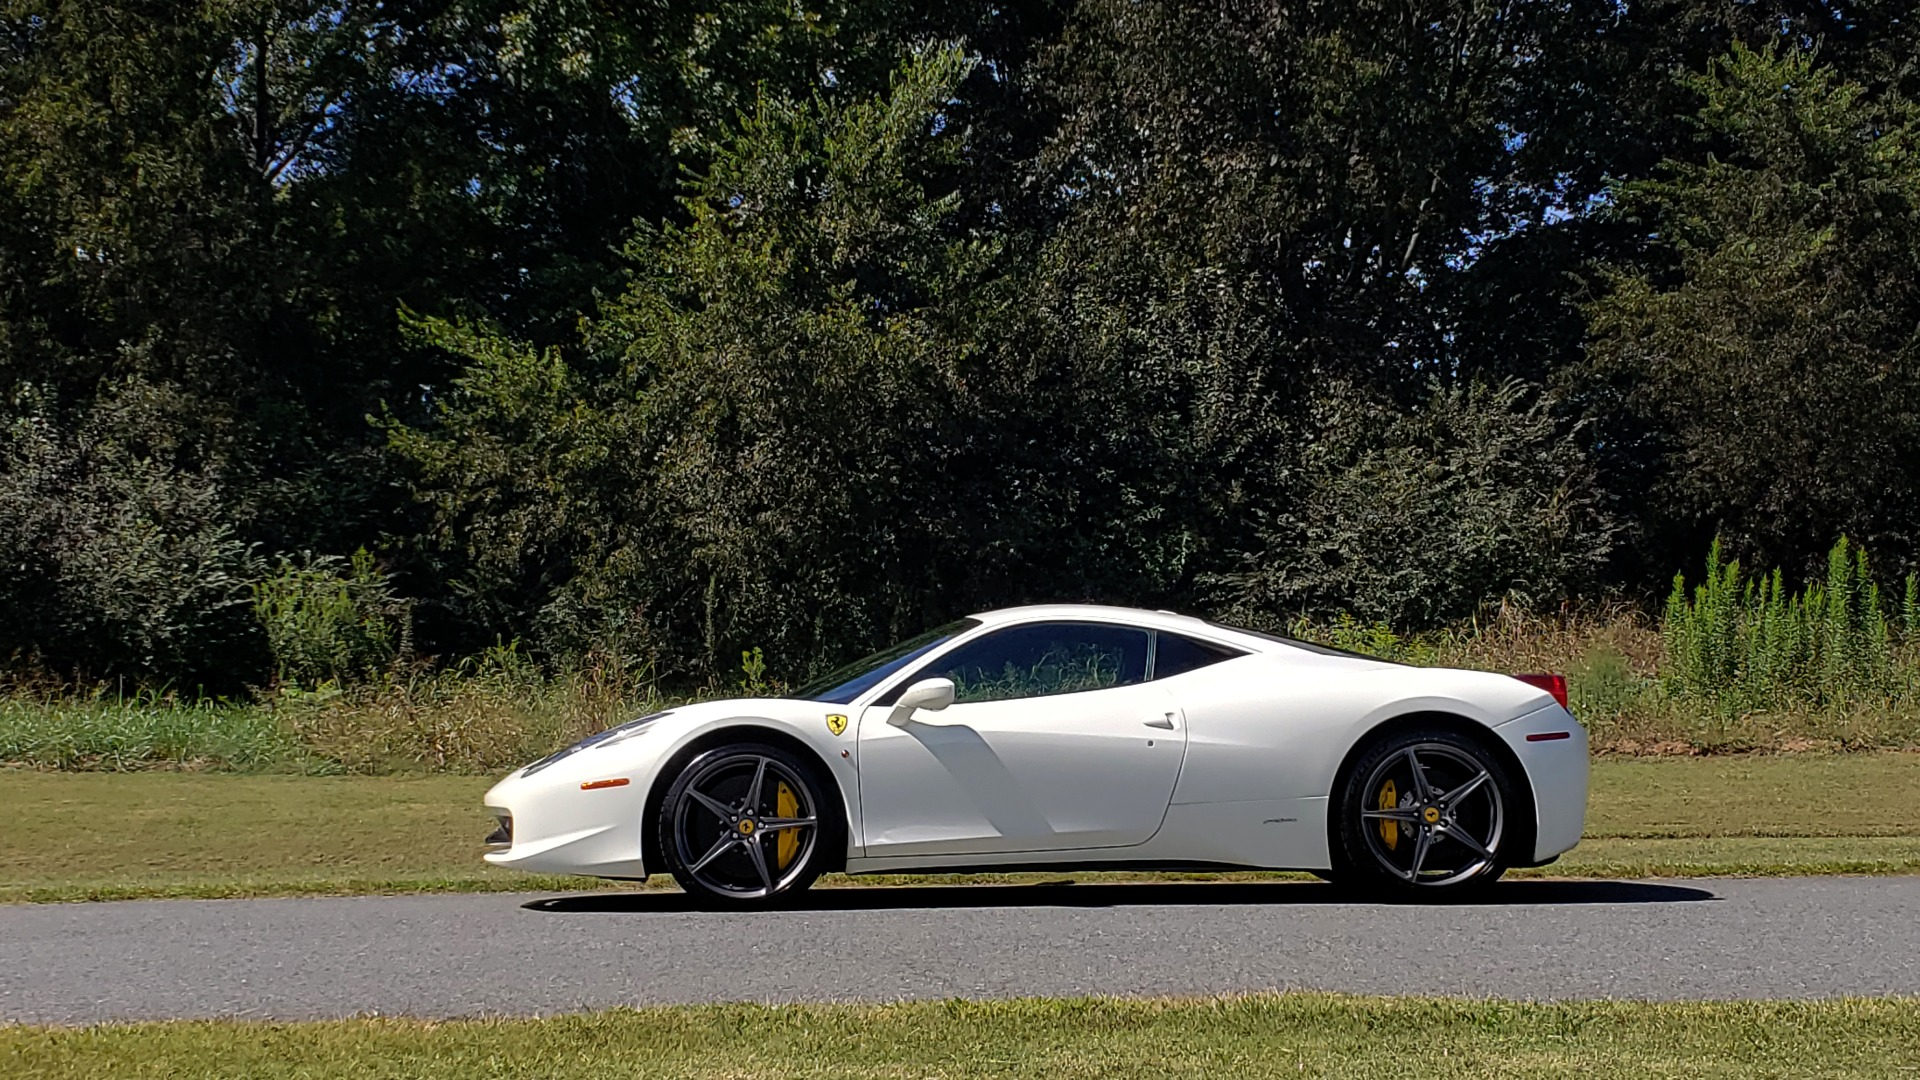 Used 2012 Ferrari 458 ITALIA COUPE / 4.5L V8 / 7-SPEED AUTO / LOW MILES SUPER CLEAN for sale Sold at Formula Imports in Charlotte NC 28227 10